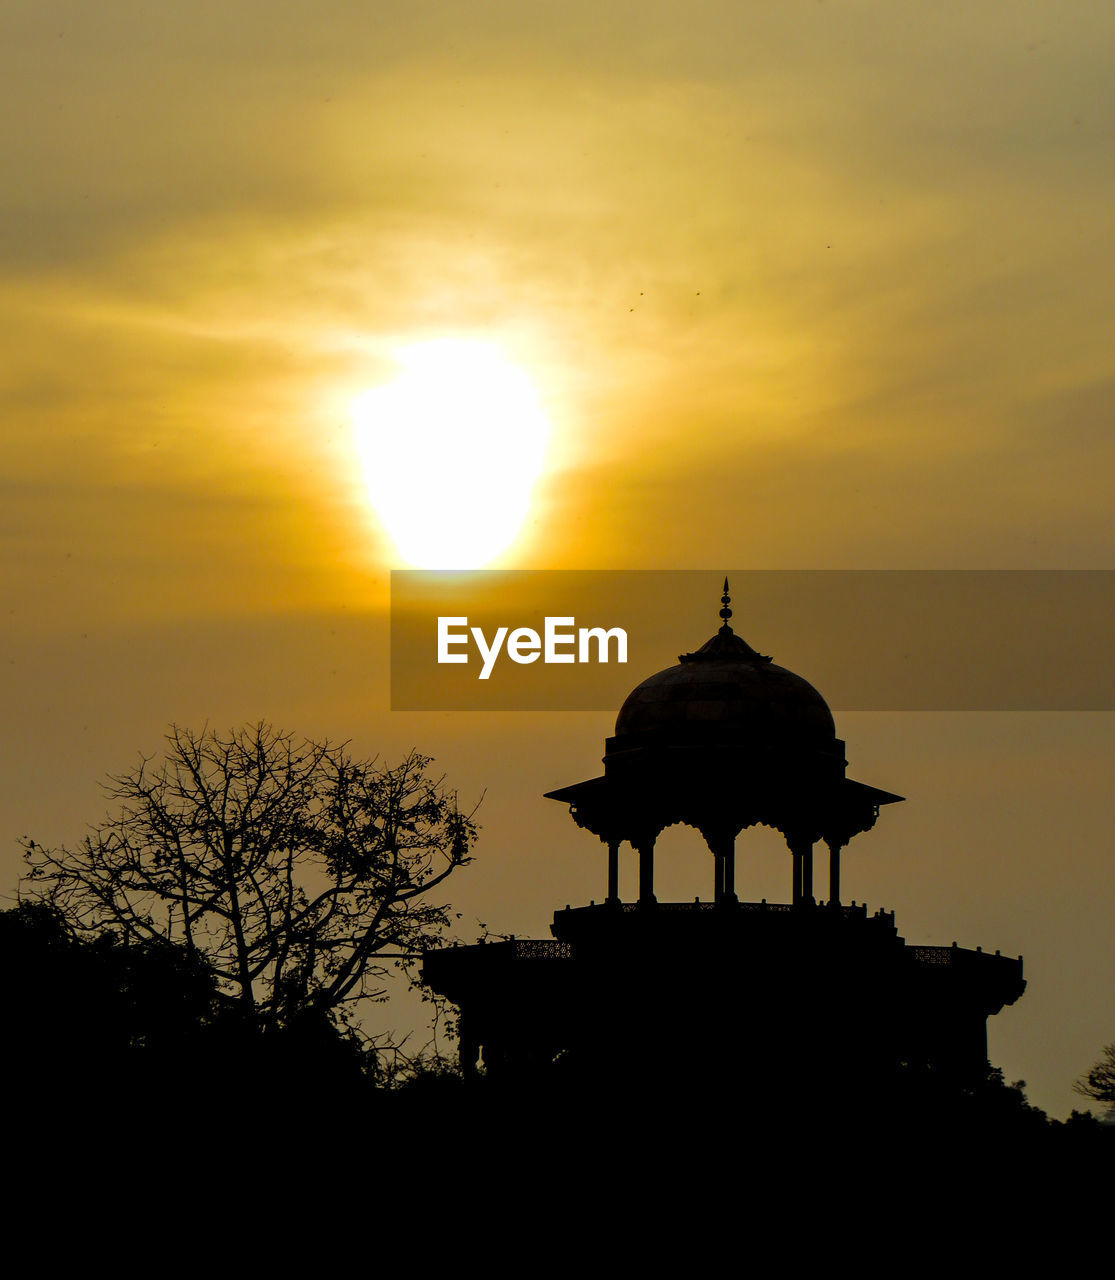 sunset, sun, silhouette, orange color, sky, outdoors, built structure, history, architecture, nature, travel destinations, ancient, sunlight, cloud - sky, no people, beauty in nature, low angle view, spirituality, tree, building exterior, scenics, dome, ancient civilization, day